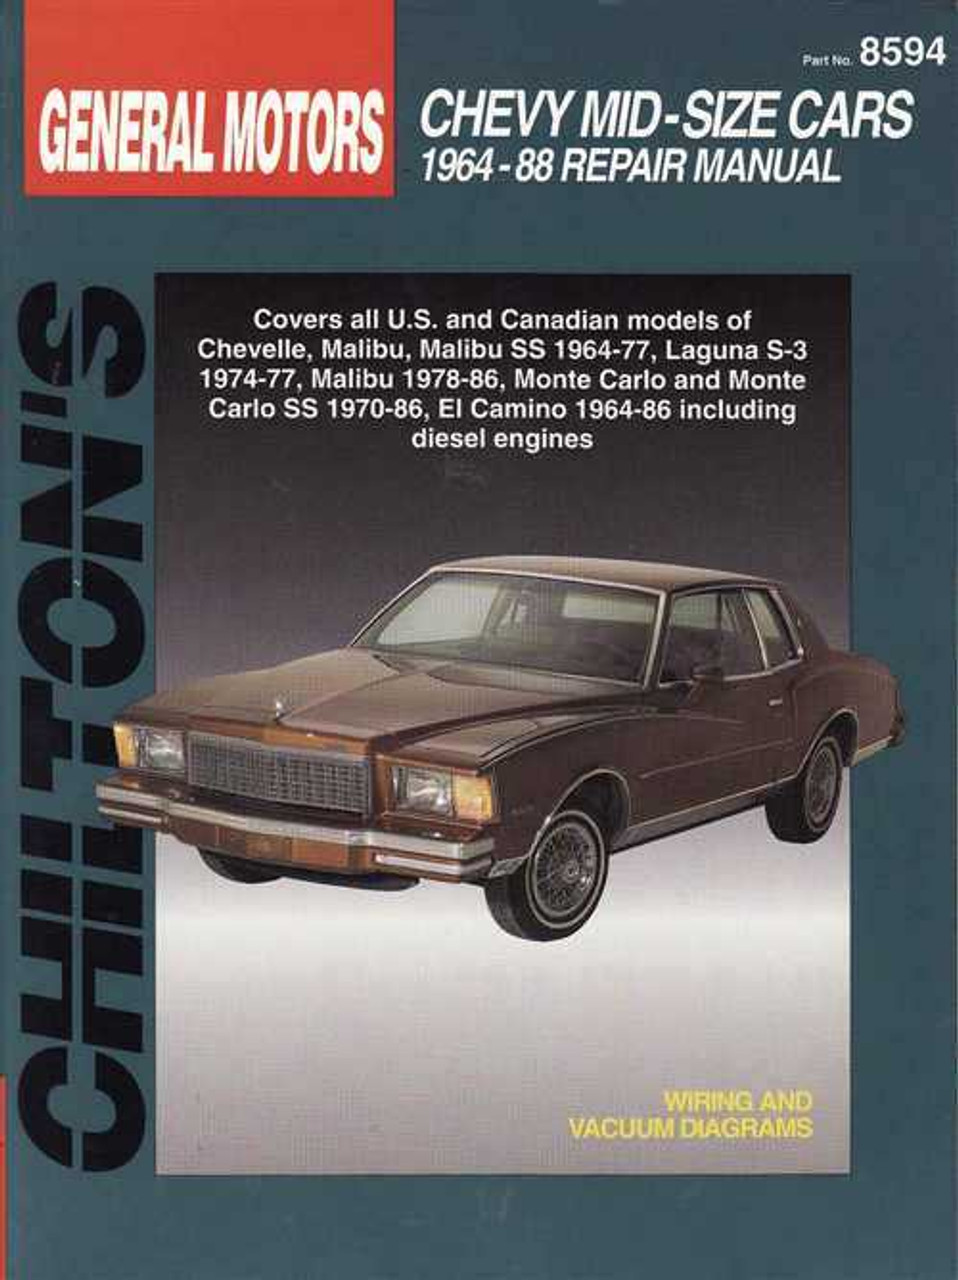 chevy mid size cars 1964 1988 workshop manual rh automotobookshop com au 1964 Chevelle Malibu Super Sport 1963 Chevelle